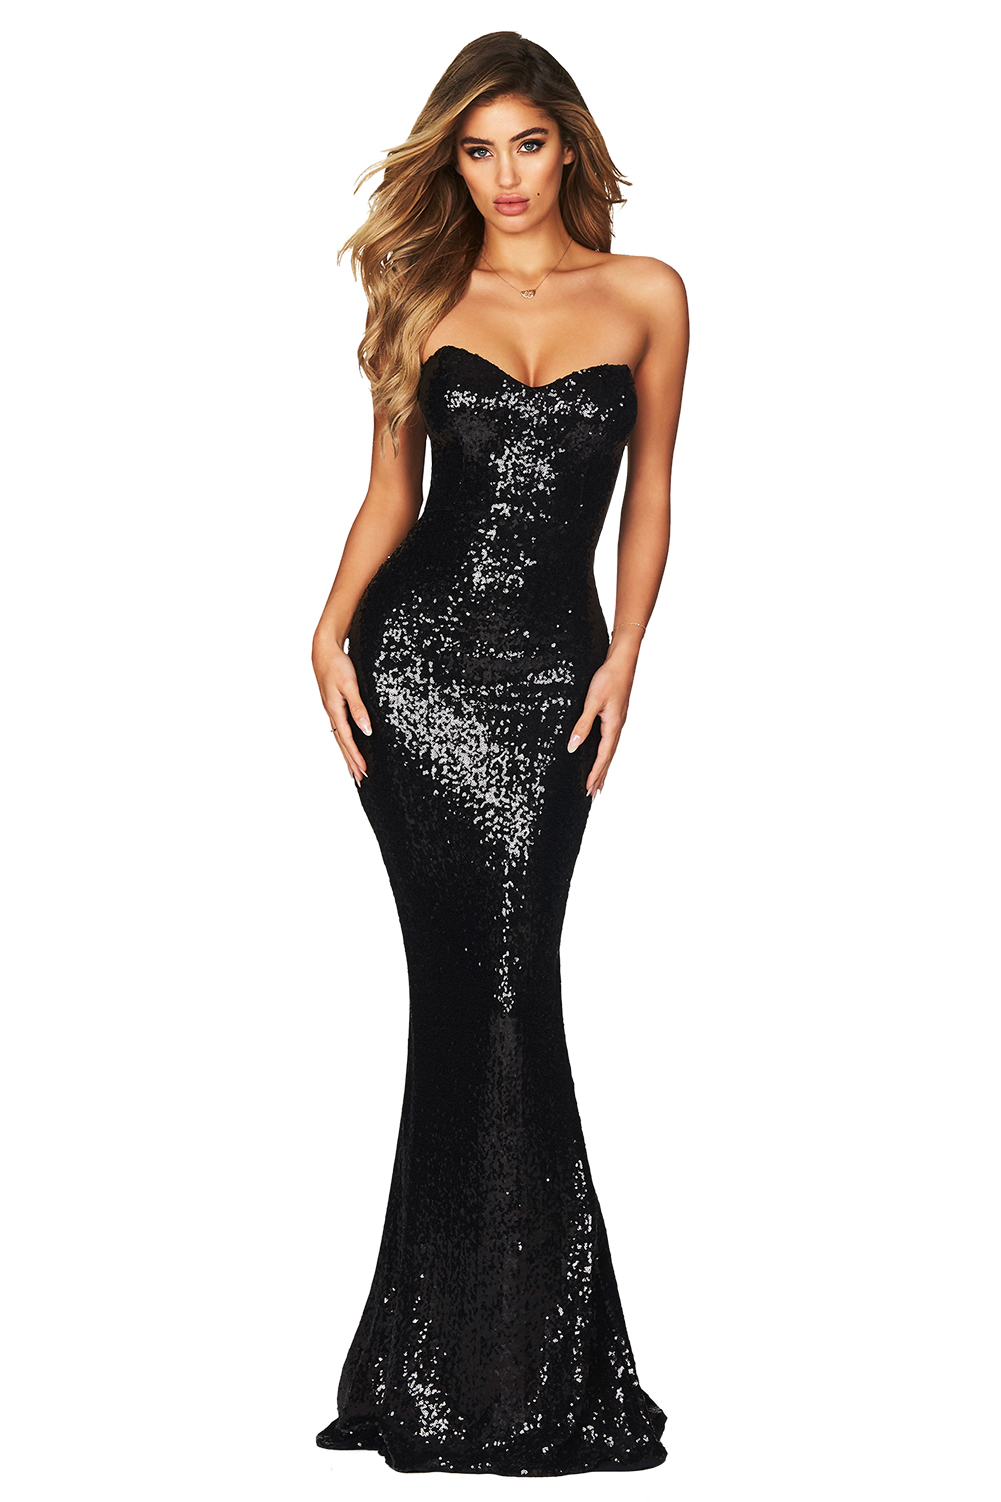 SPELLBOUND STRAPLESS GOWN BLACK